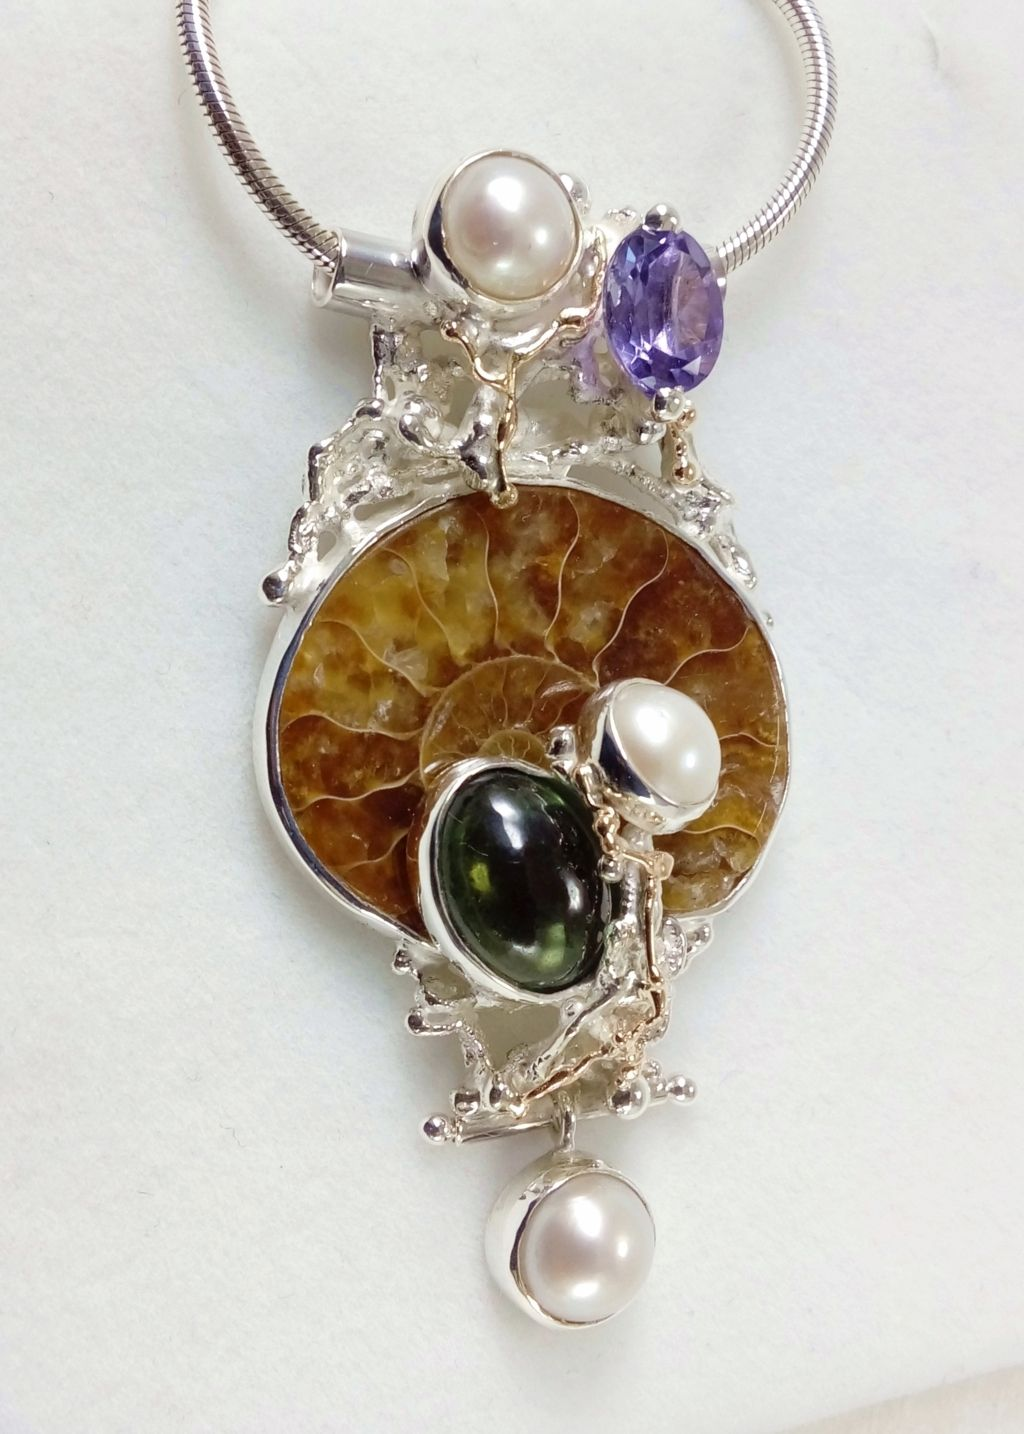 gregory pyra piro, pendant #4921, sterling silver and 14 karat gold pendant, pendant with faceted amethyst and fluorite, pendant with amethyst and ammonite, pendant with ammonite and fluorite, one of a kind handcrafted ring, original handcrafted jewellery